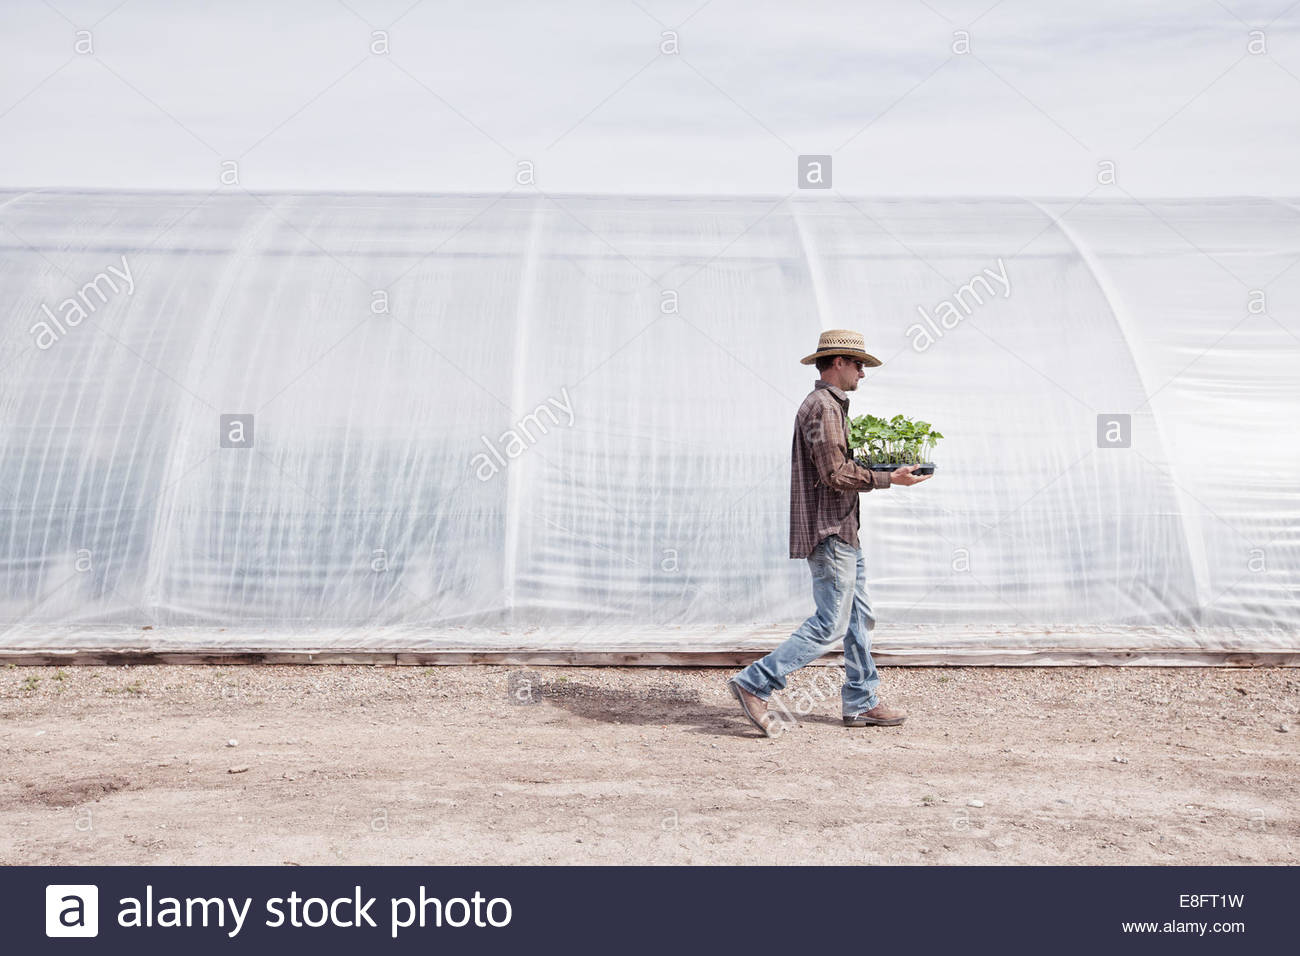 Man carrying tray of plants on an organic farm - Stock Image